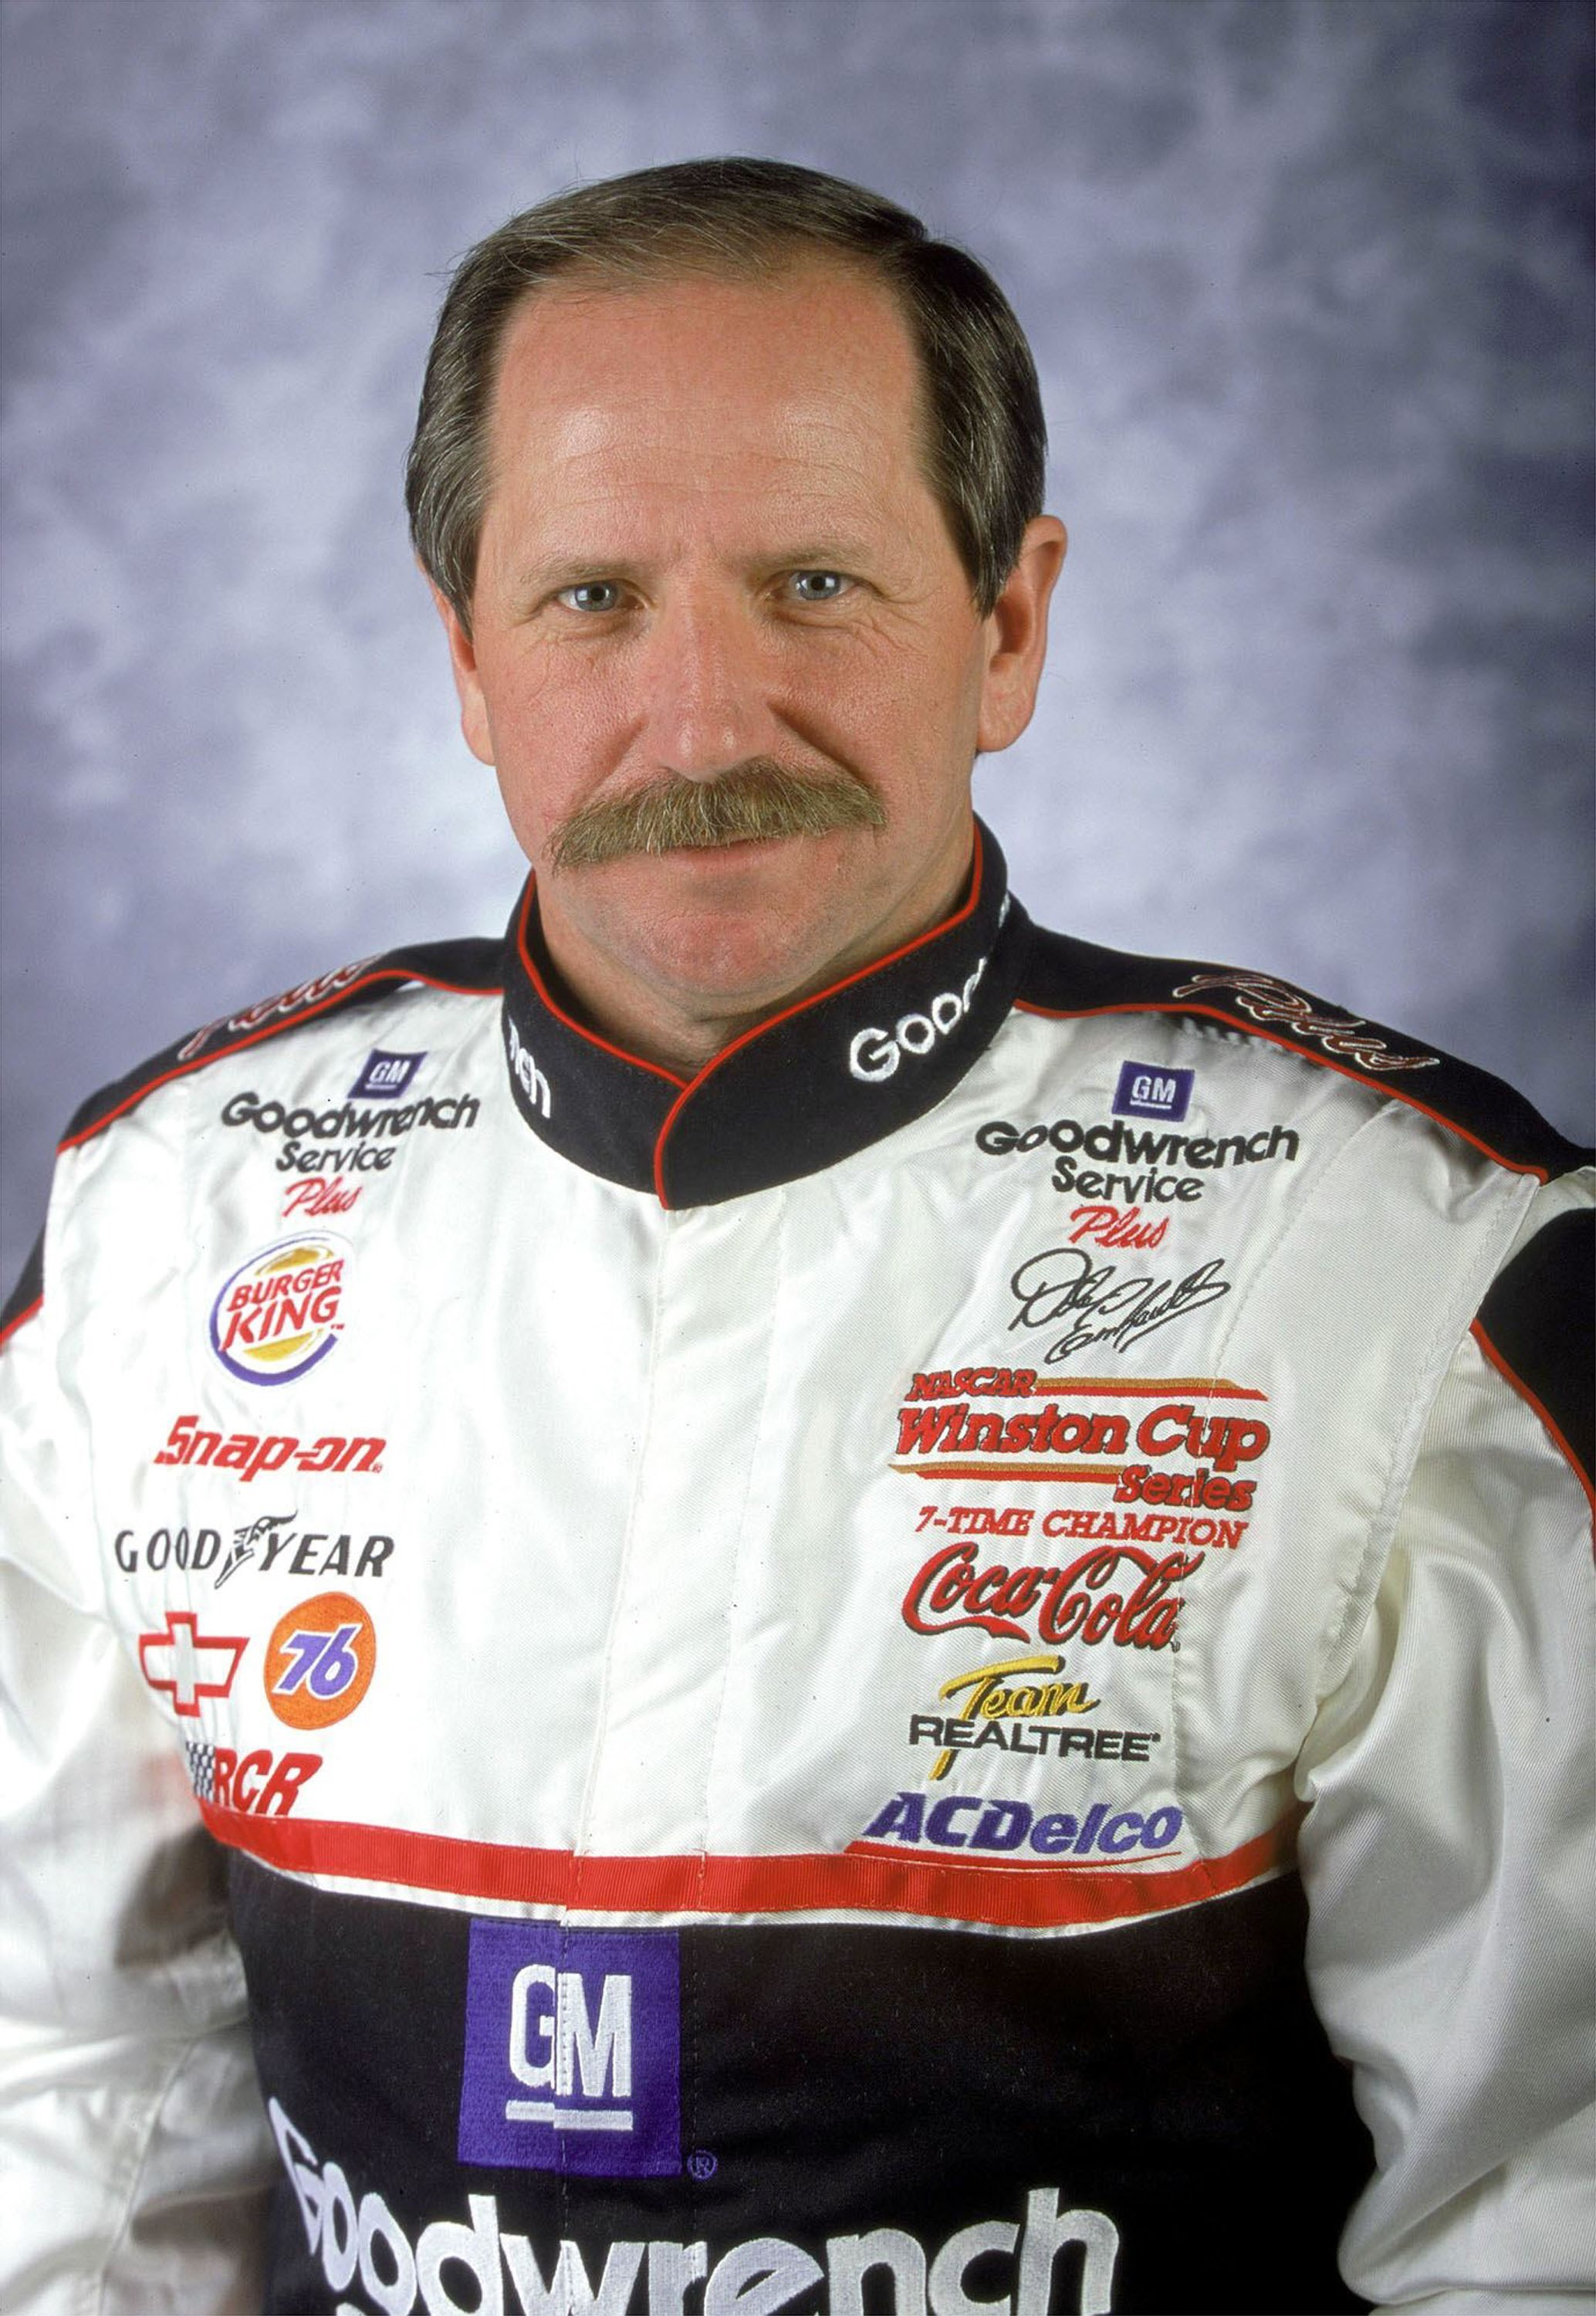 a biography of dale earnhardt a racing driver A dale earnhardt jr biography at 17 years old dale jr began his racing career with dale earnhardt had been the long-time driver of the no 3.